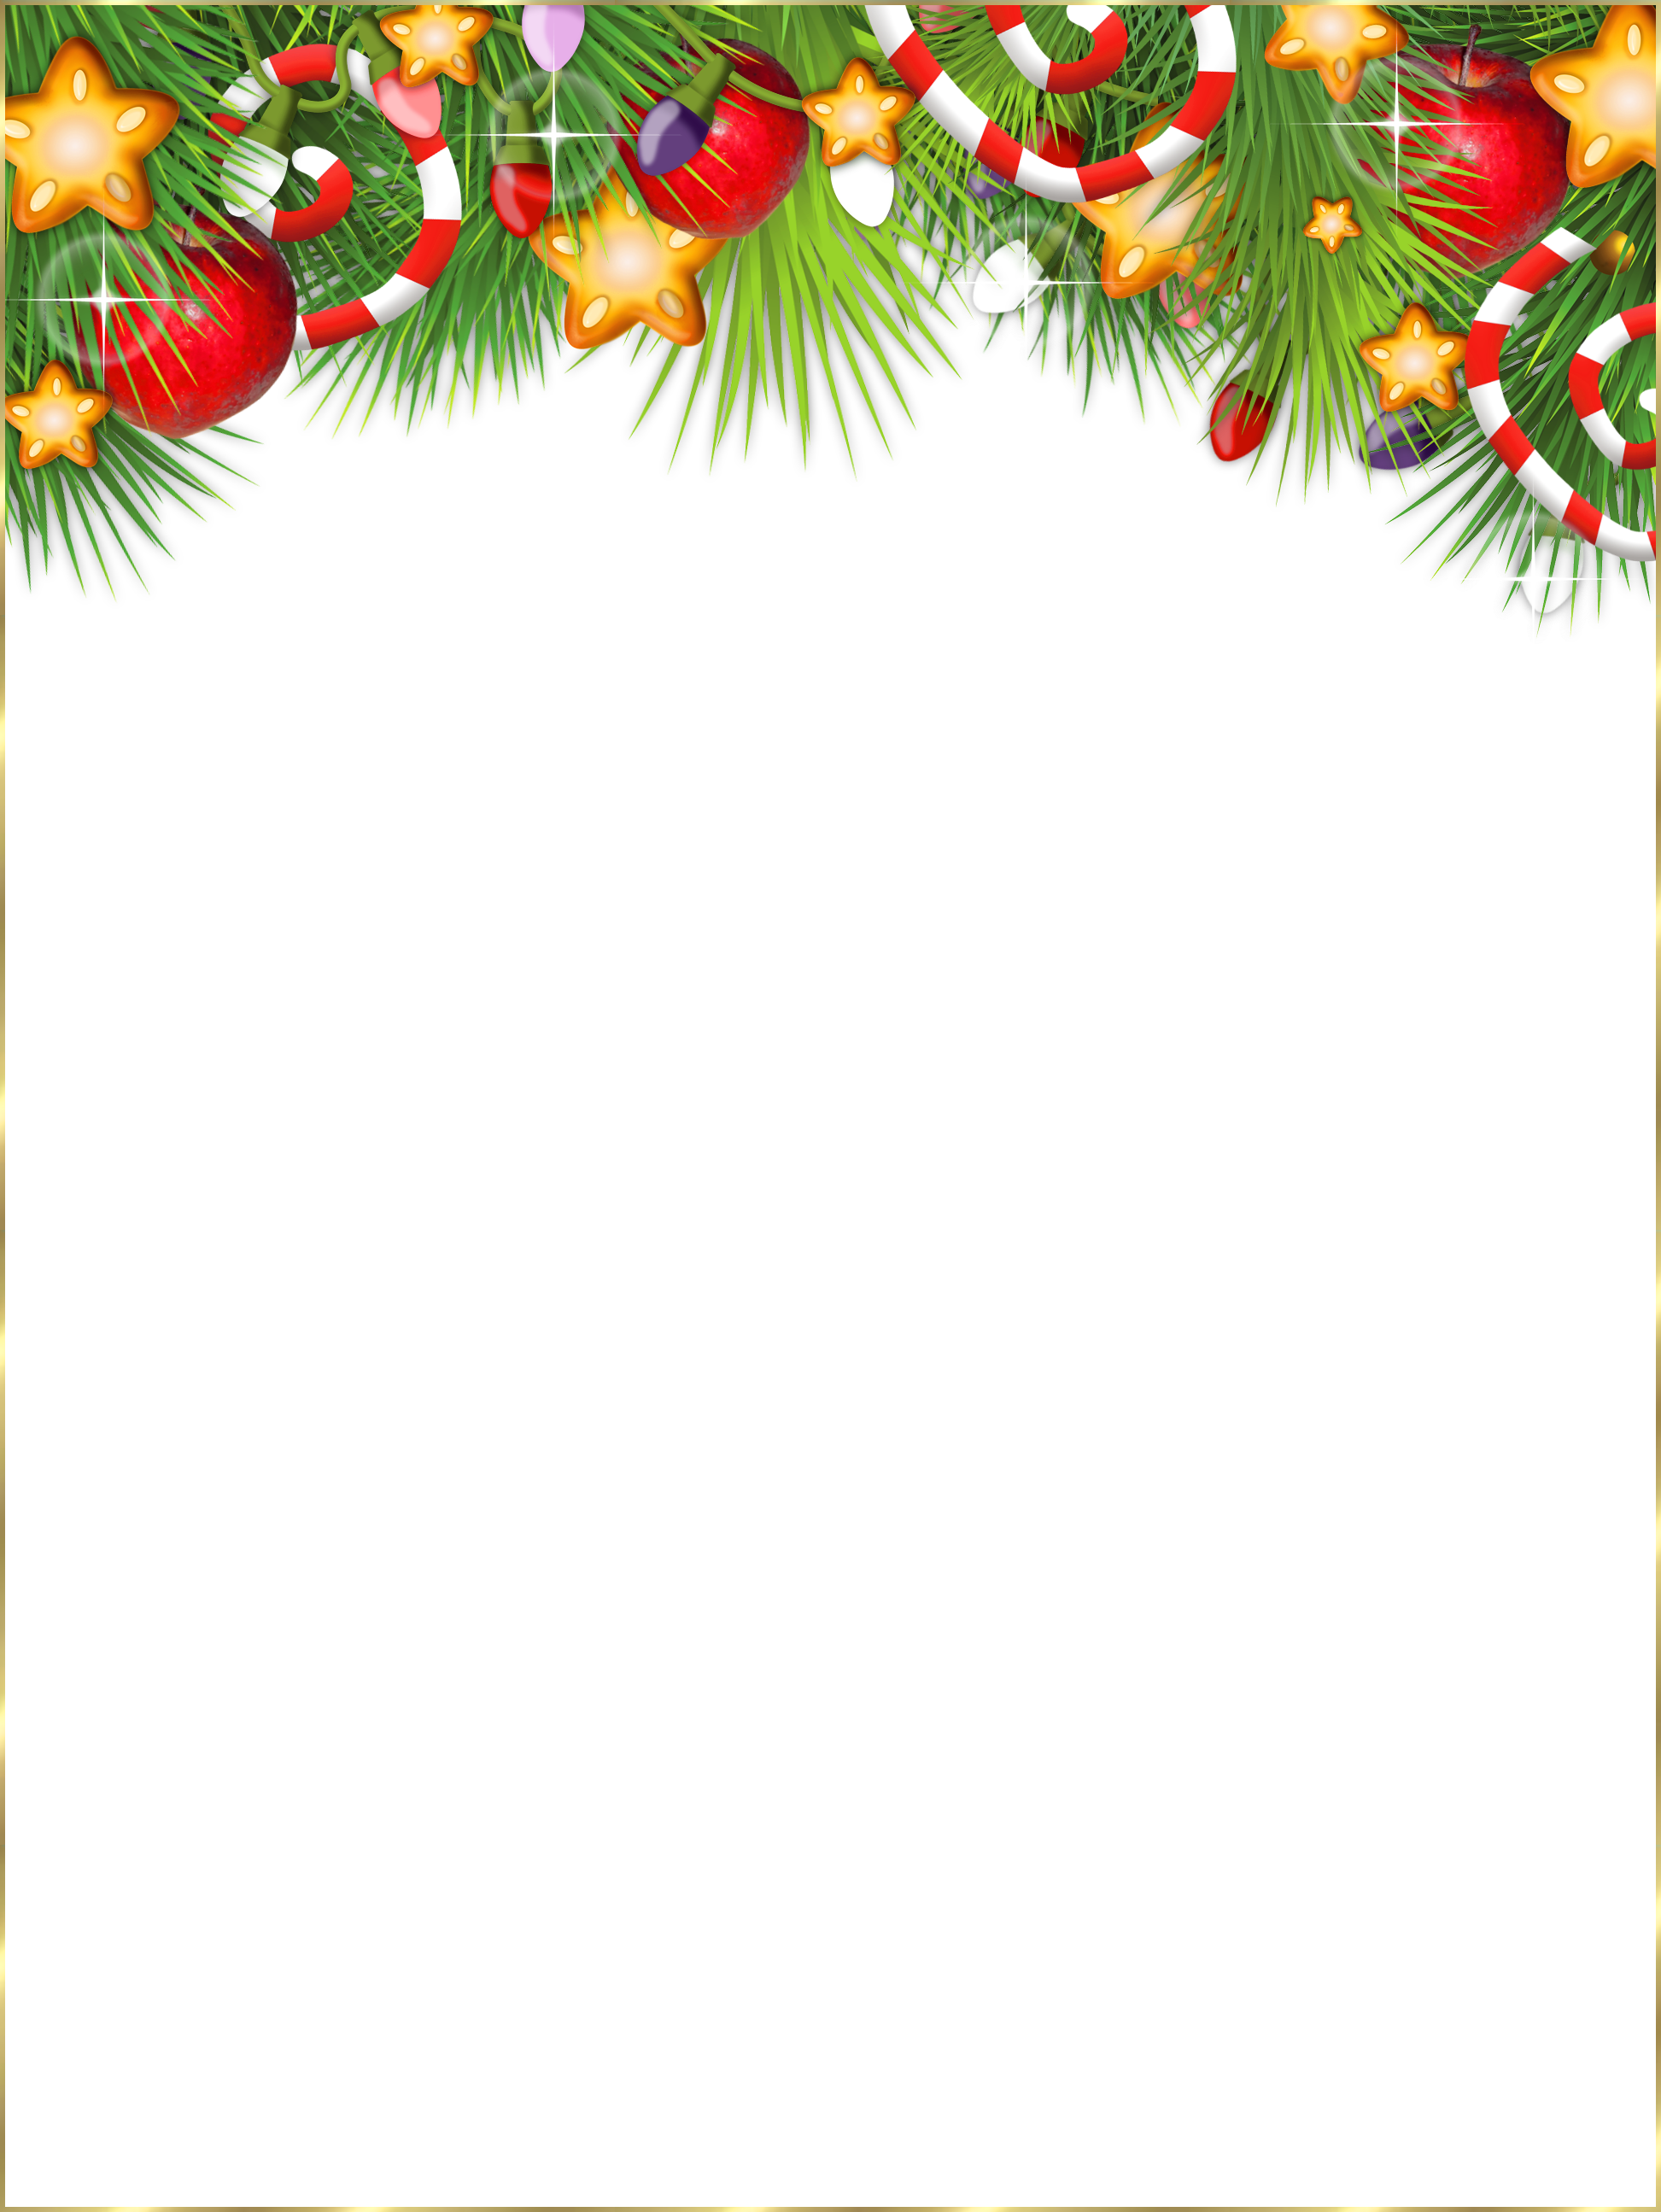 Christmas frame clipart clip black and white Cute Transparent Christmas Photo Frame | Gallery Yopriceville ... clip black and white